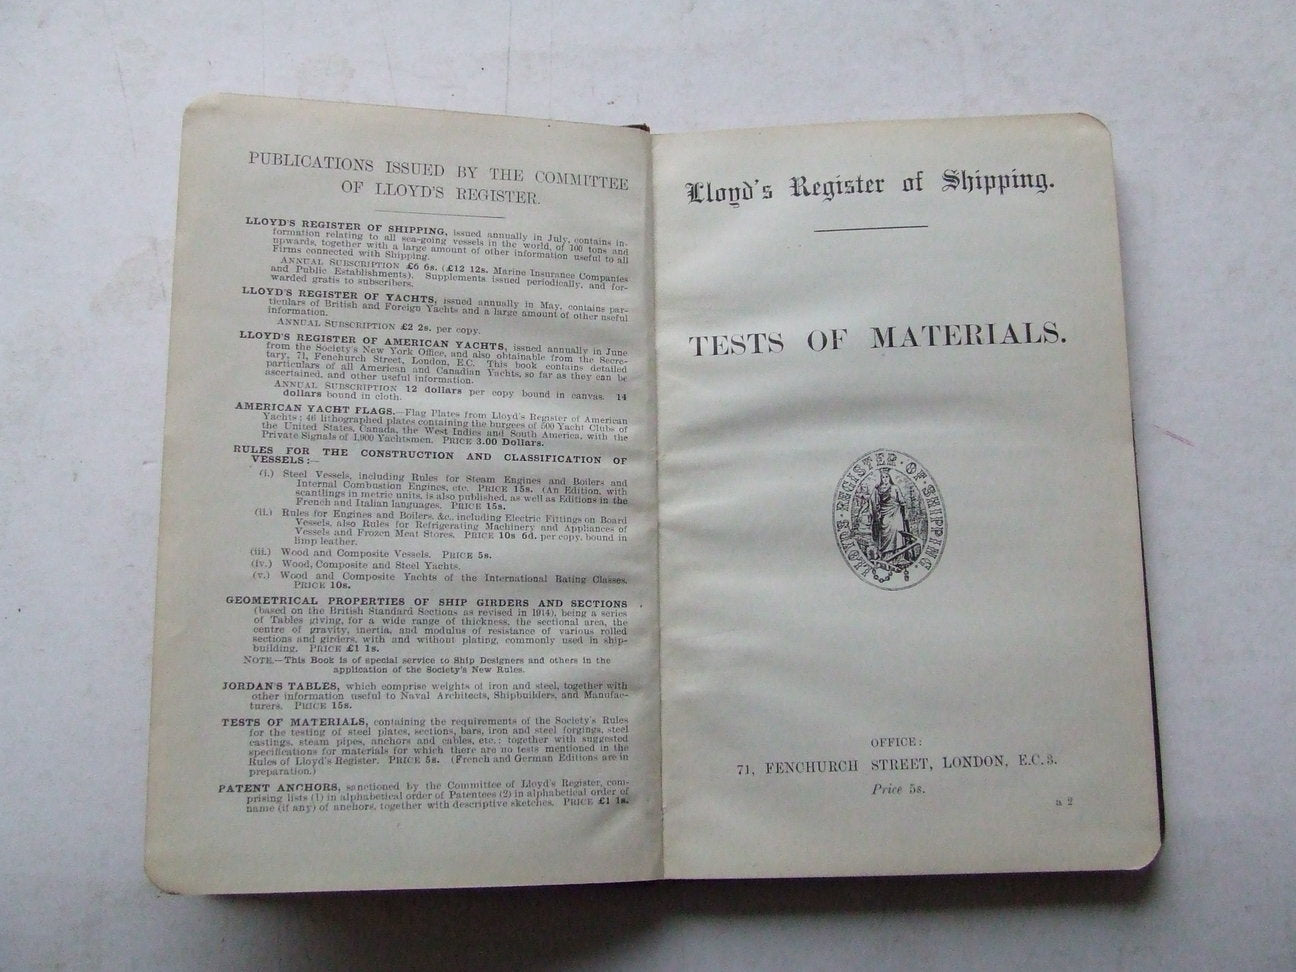 Lloyd's Register of Shipping - Tests of Materials